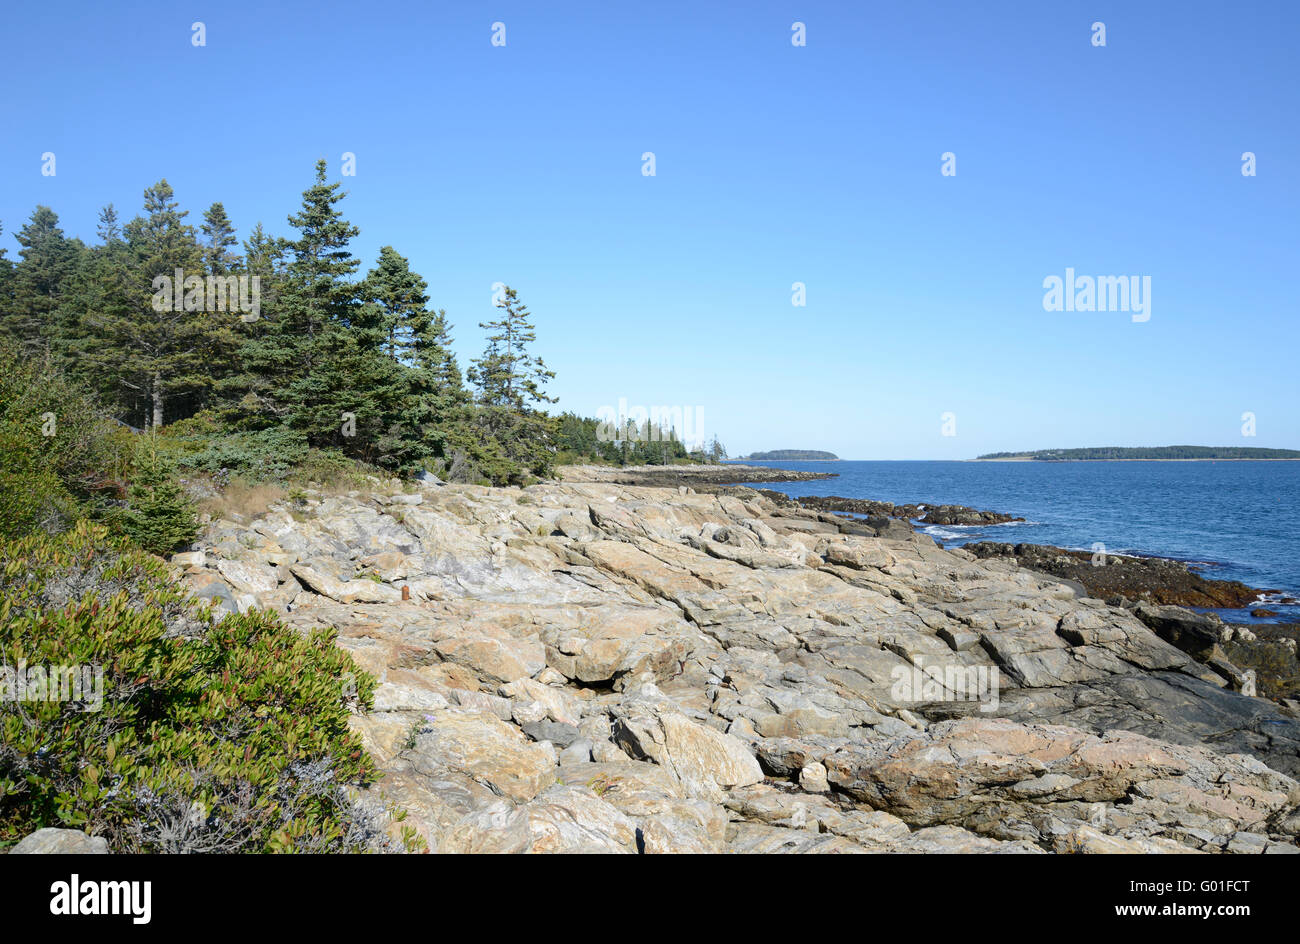 rocks and evergreen trees line the coast of Maine - Stock Image